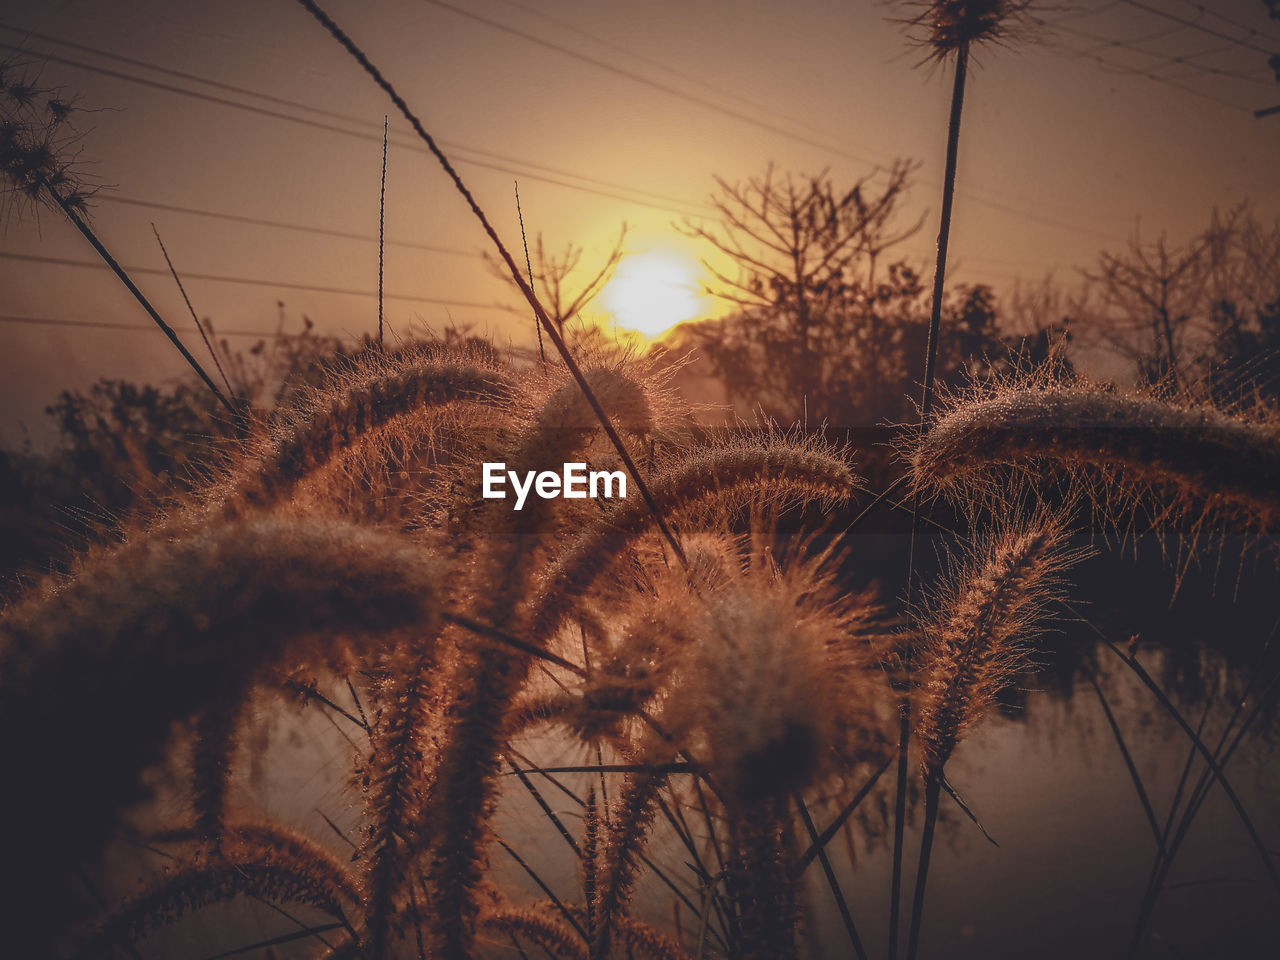 sky, sunset, plant, tranquility, nature, beauty in nature, growth, no people, orange color, close-up, focus on foreground, sun, tranquil scene, grass, scenics - nature, sunlight, outdoors, field, fragility, silhouette, stalk, timothy grass